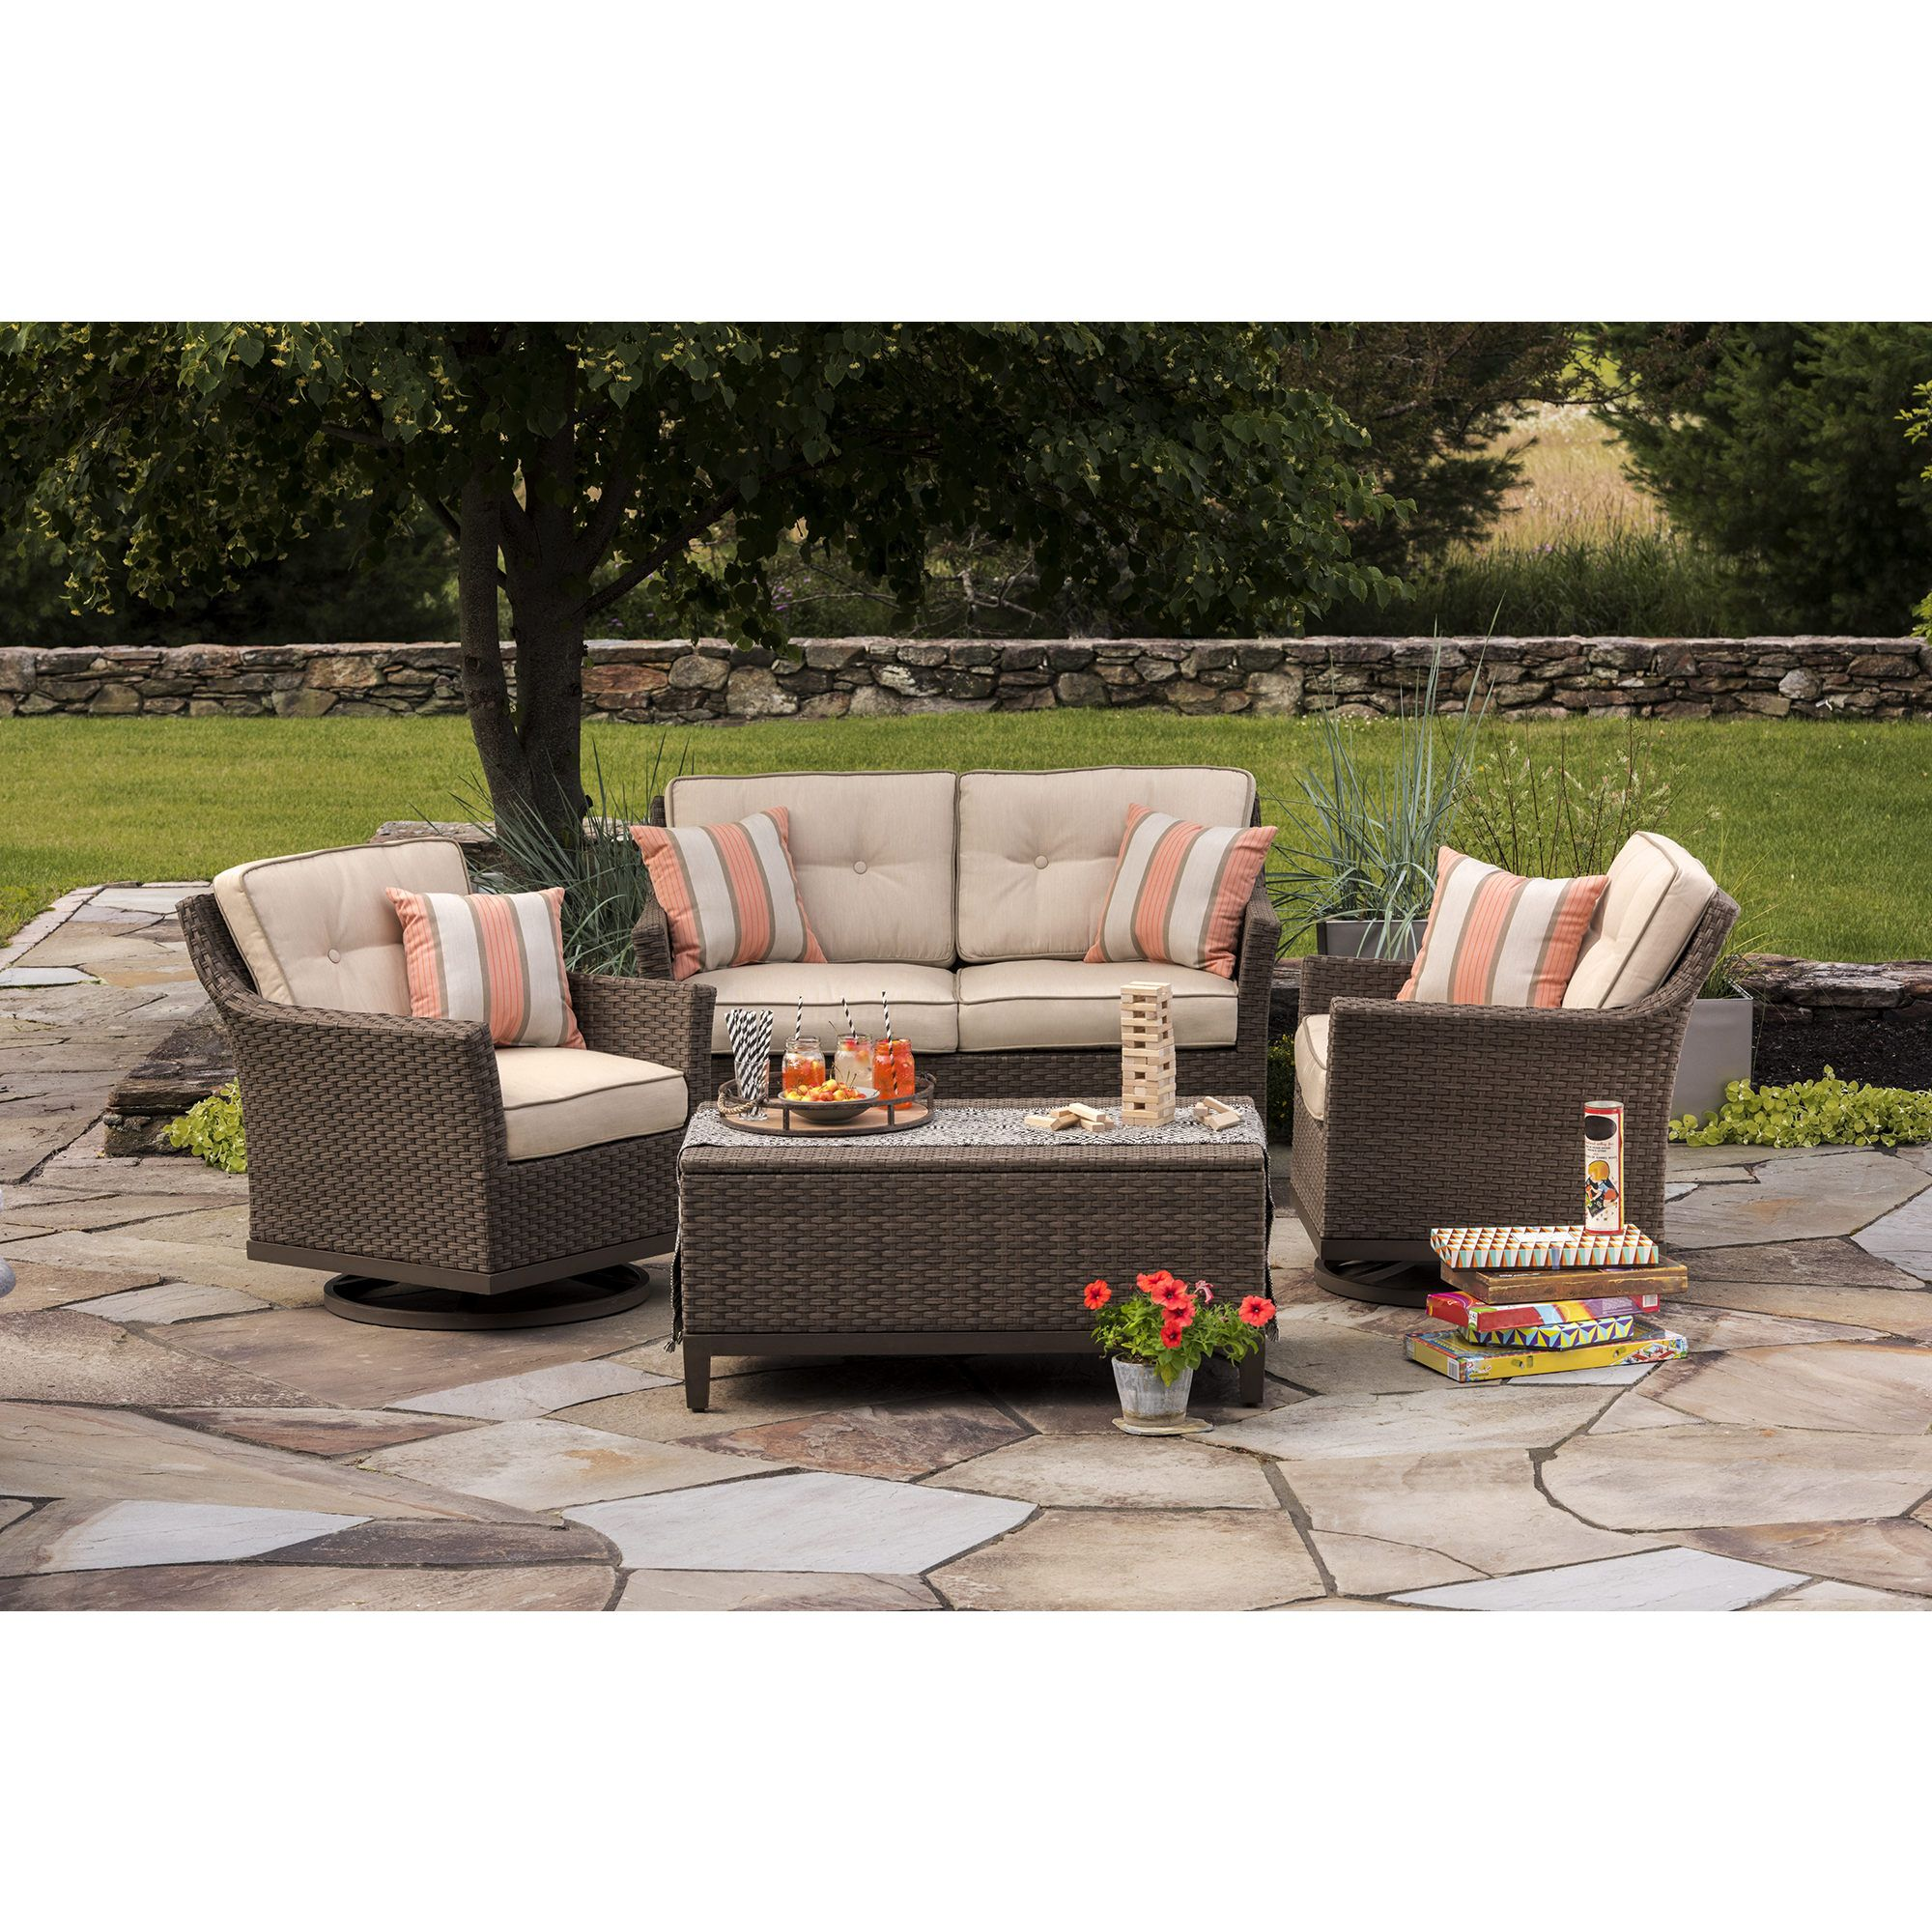 Find This Pin And More On Outdoor Living.